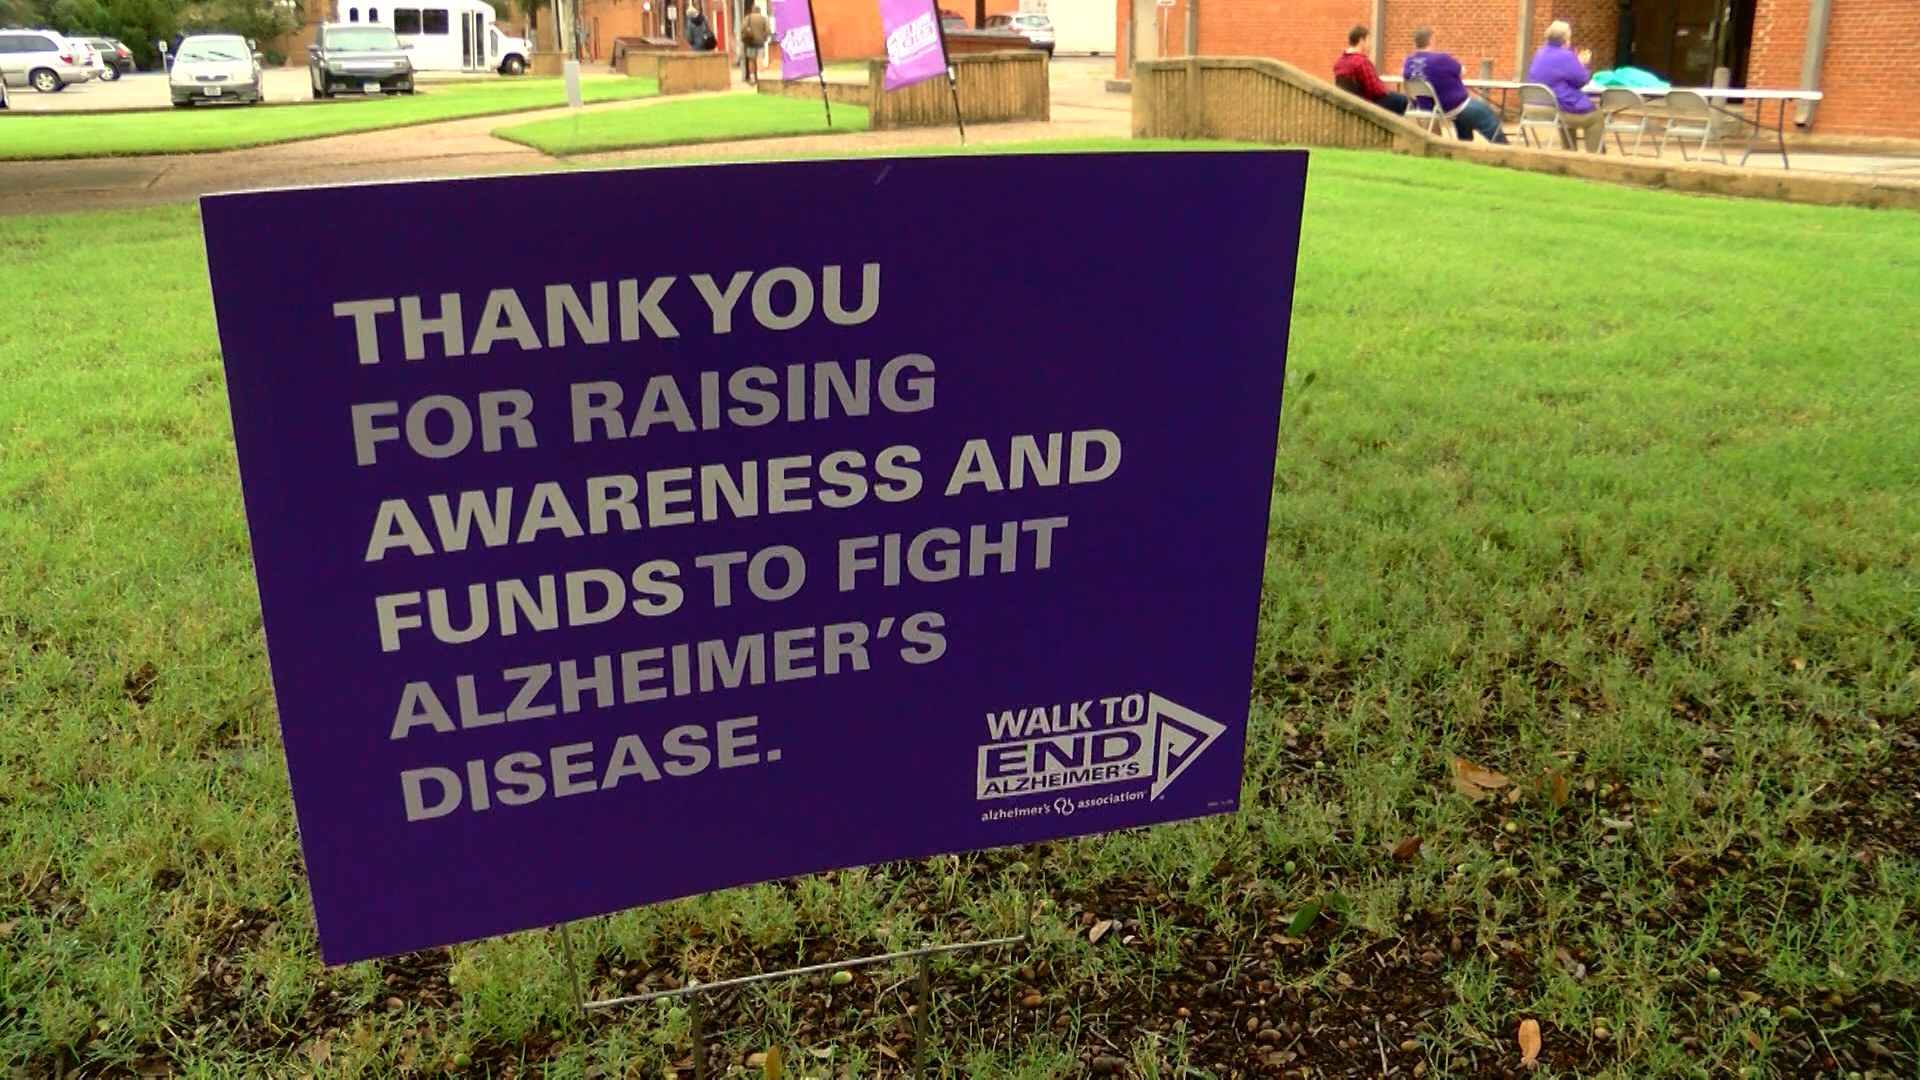 On Saturday the North Central Texas Chapter Alzheimer's Association is hoping to raise money to put a stop to the 6th leading cause of death in the United States.